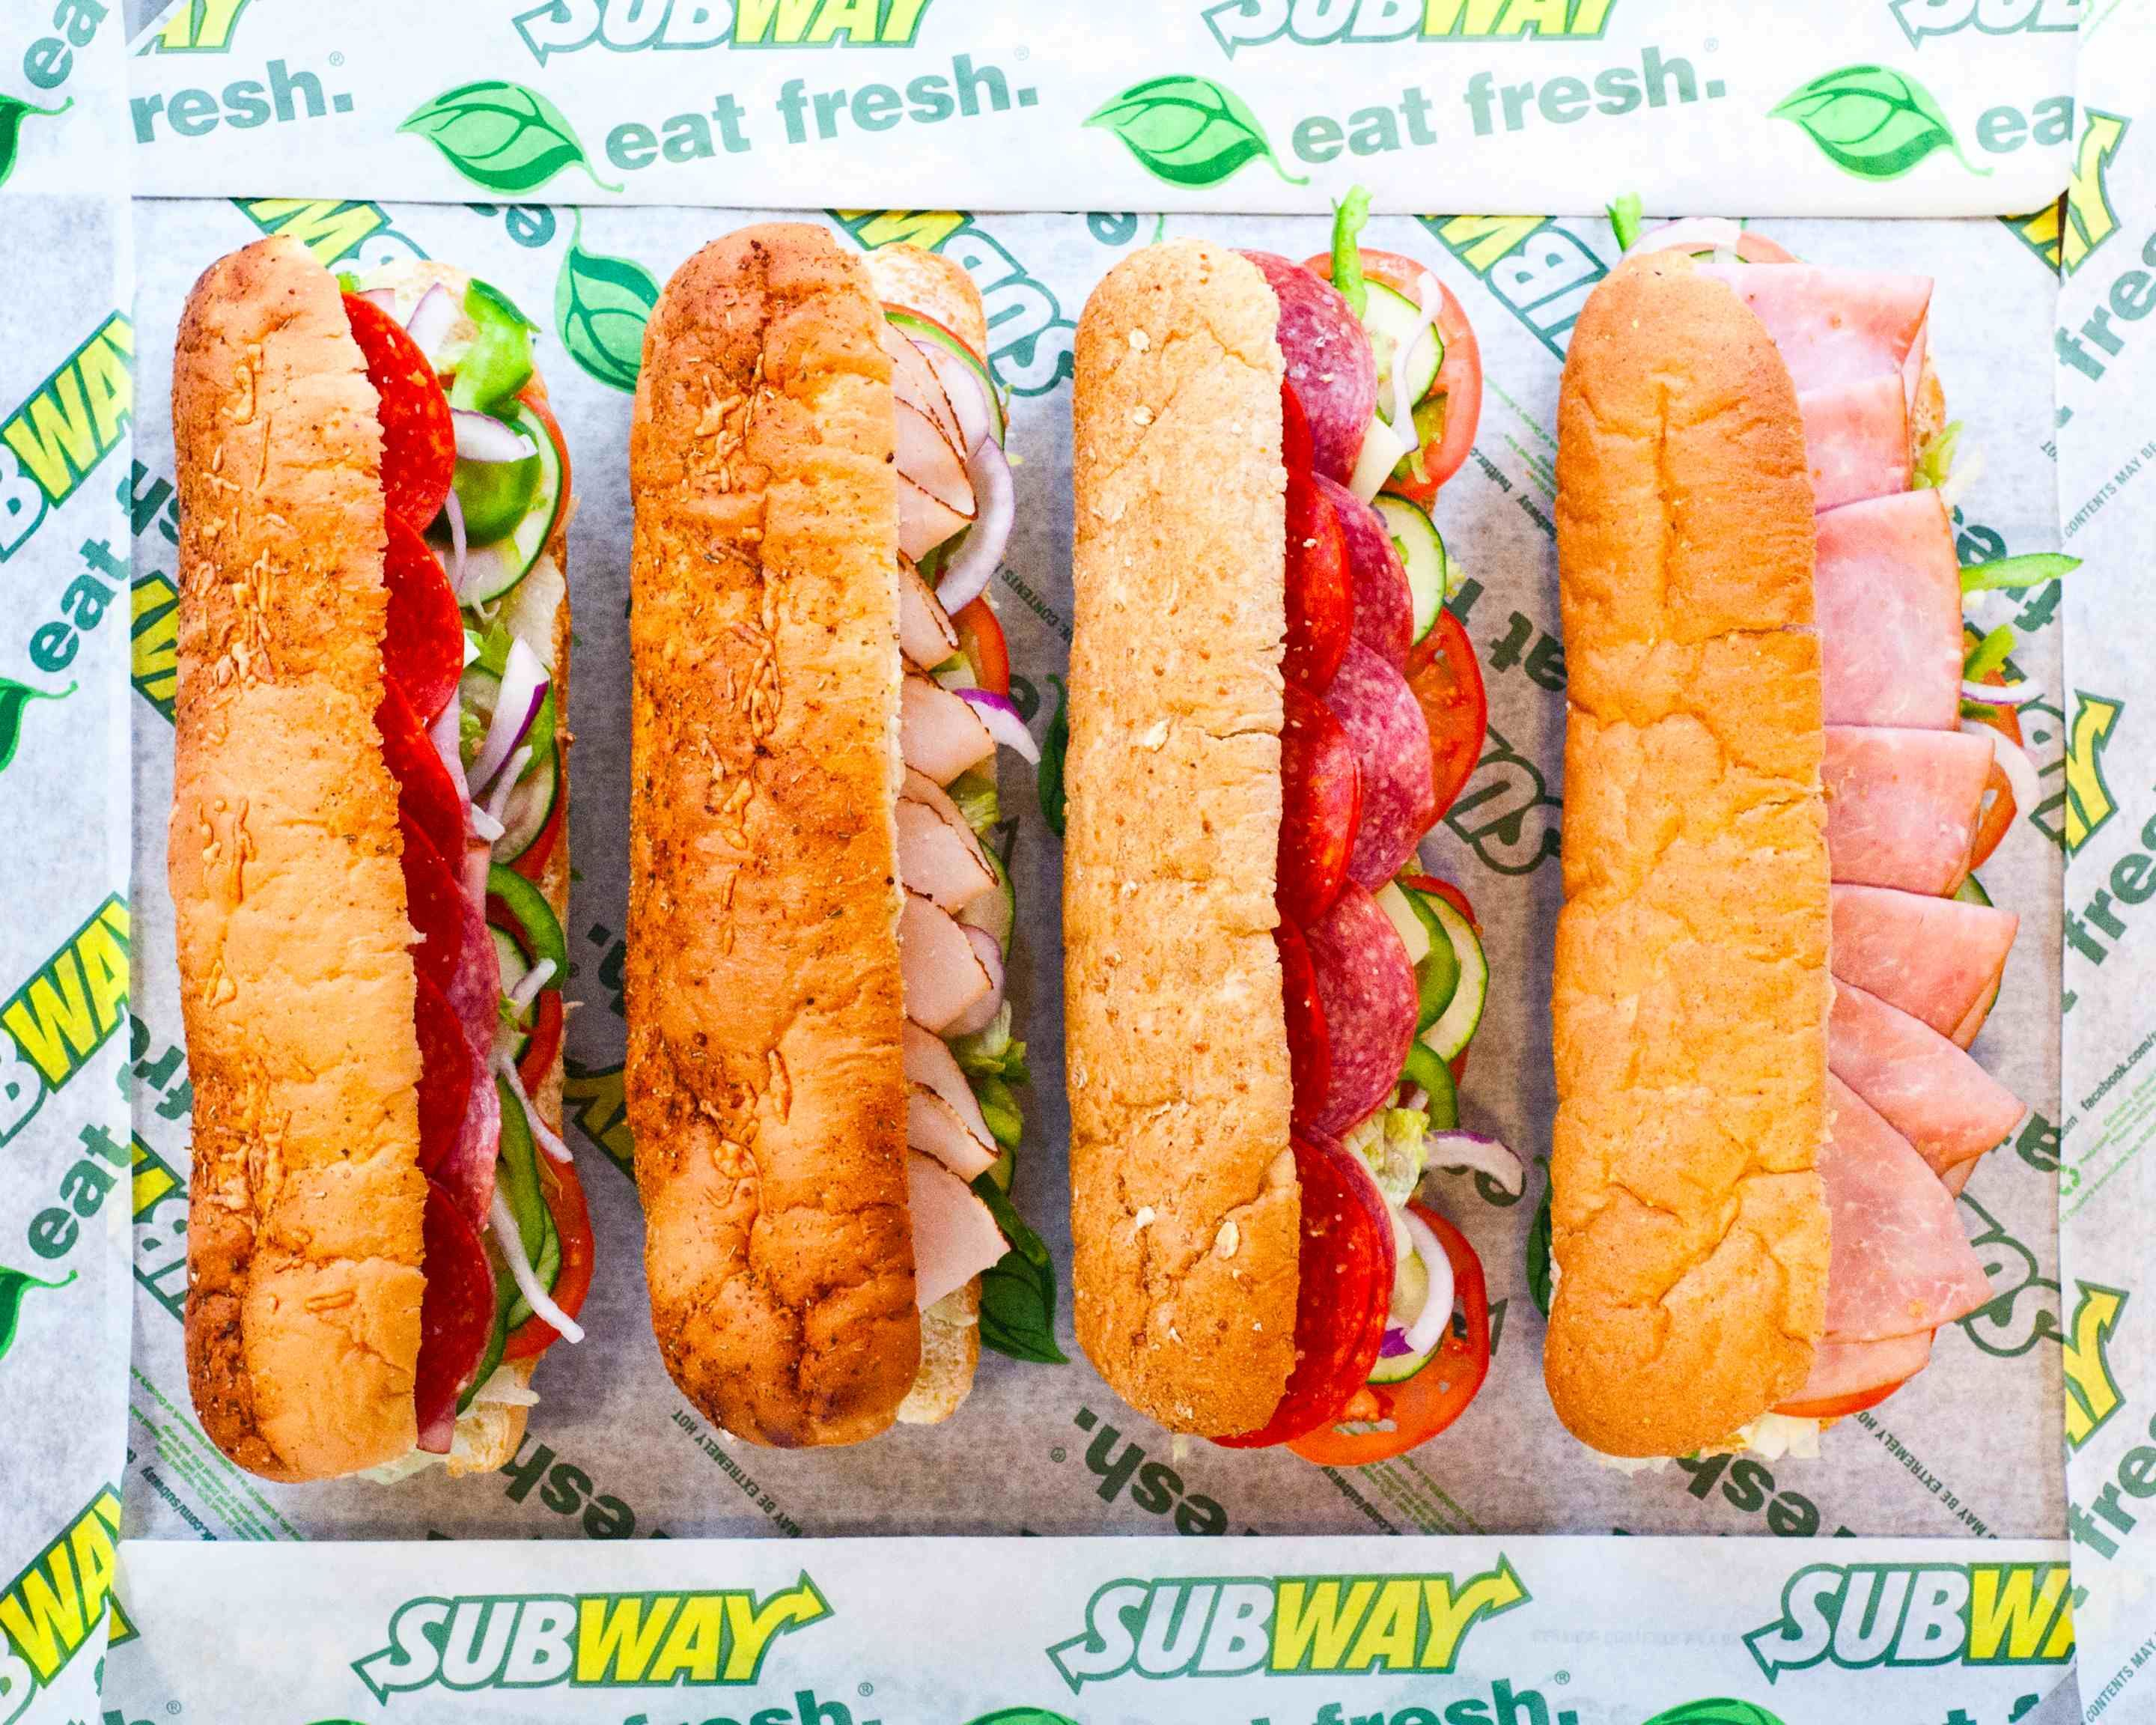 Mutable Duplicate Subway Kew Gardens Delivery New York City Uber Eats Subway Rotisserie Ken Salad Calories Subway Rotisserie Ken Salad Carbs nice food Subway Rotisserie Chicken